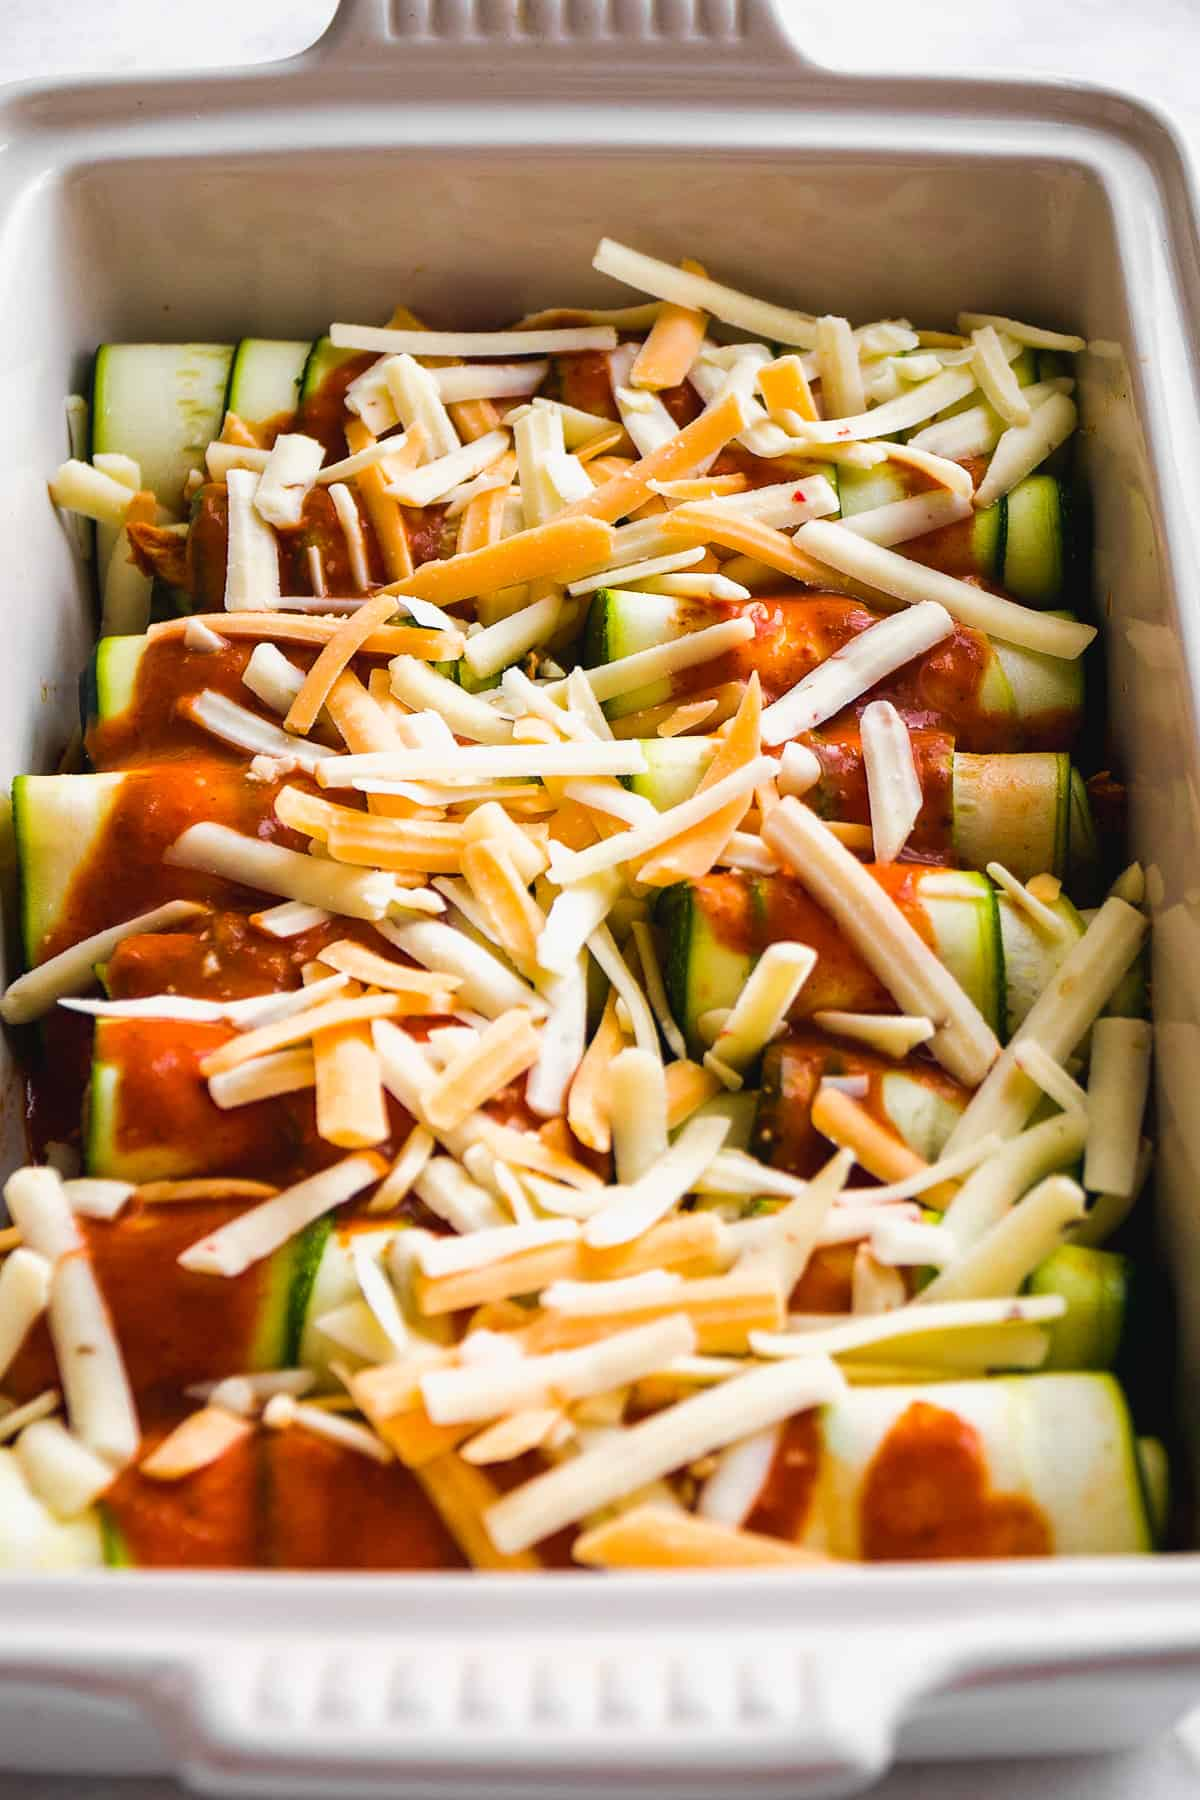 Baking dish with zucchini chicken roll ups topped with enchilada sauce and cheese about to be baked.